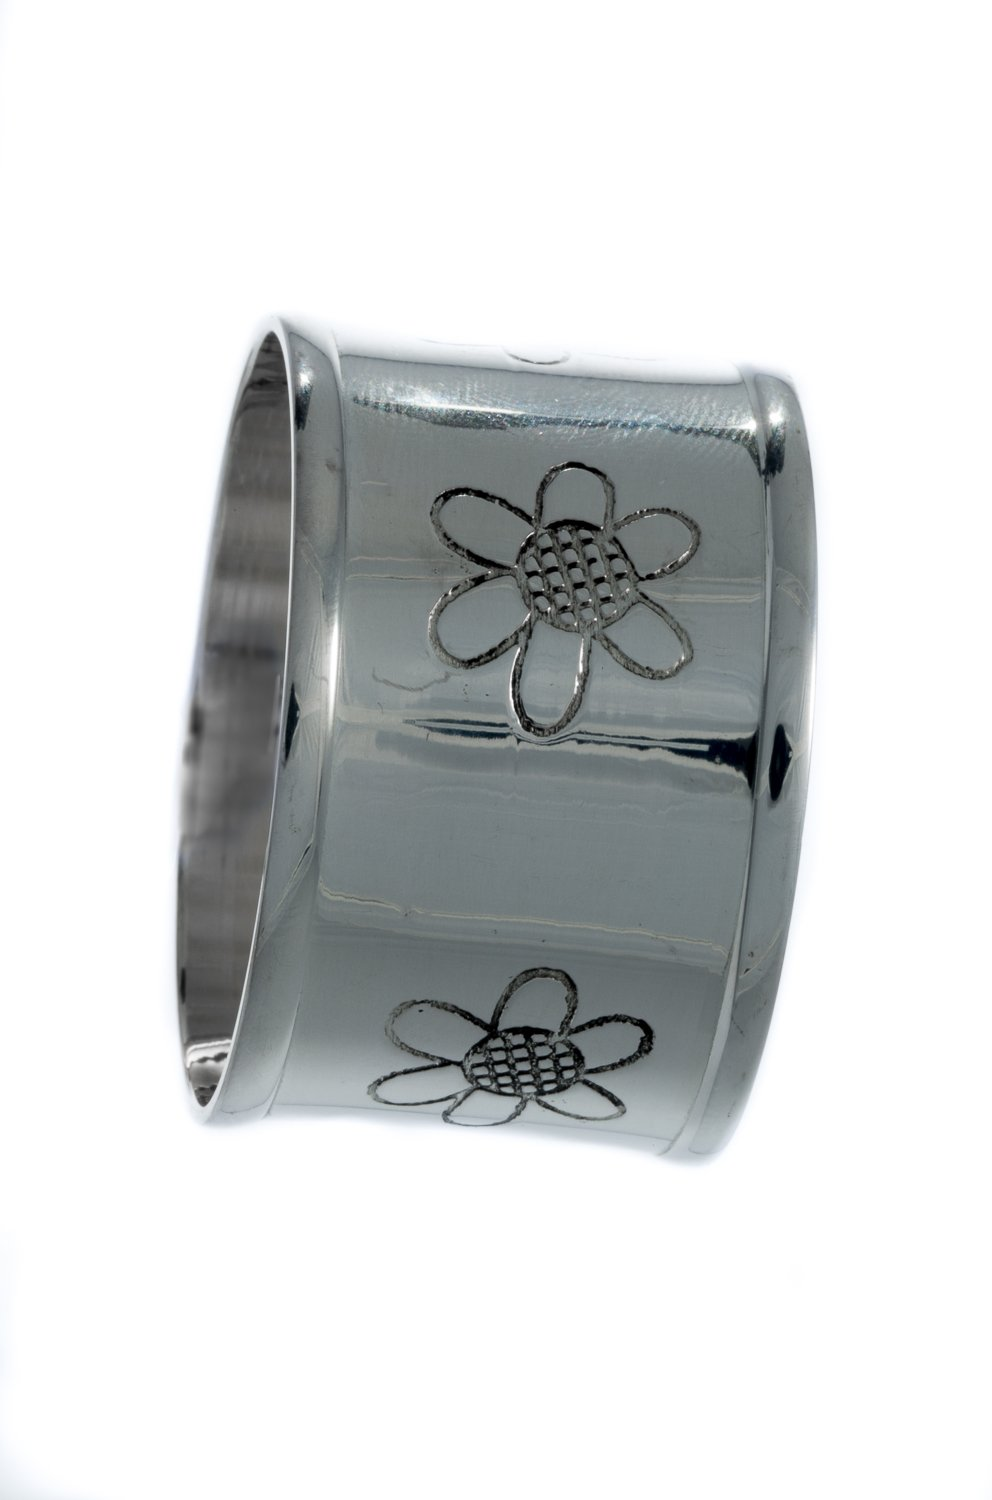 Set of 8 Beautiful Daisy Design Silver Colour Napkin Rings by Libby's Market Place ~ From UK Seller Libby's Marketplace